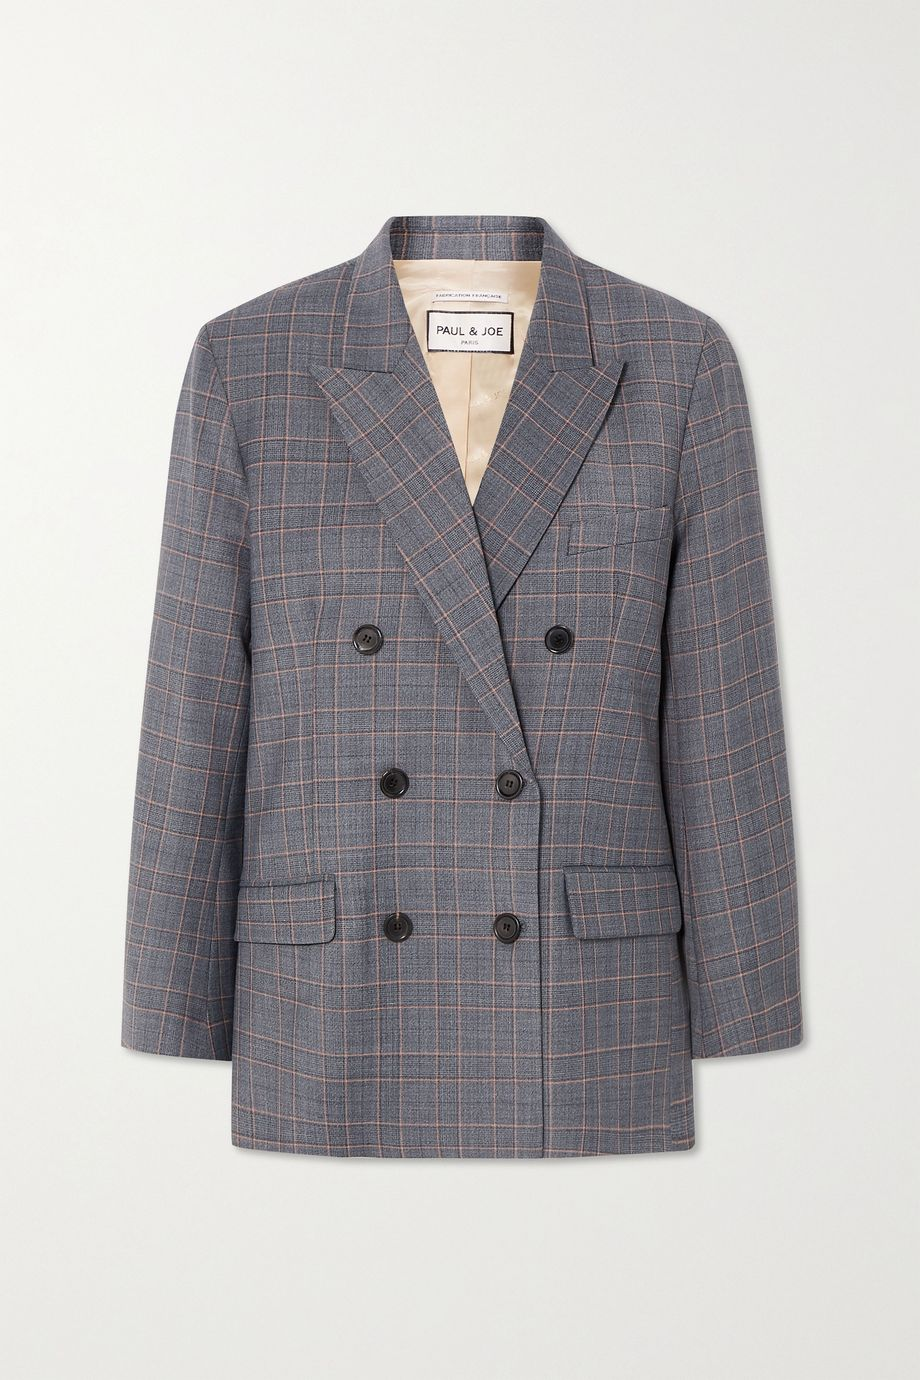 Paul & Joe Sofia double-breasted checked twill blazer